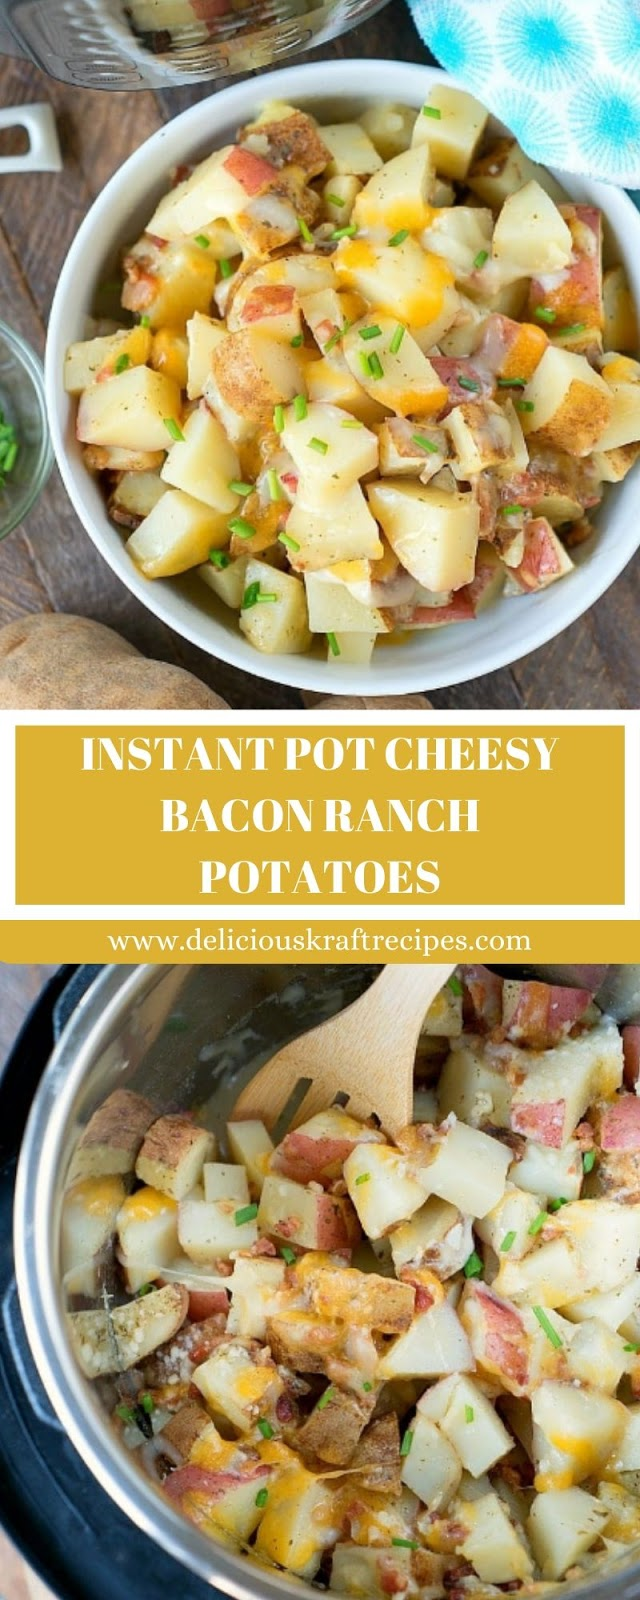 INSTANT POT CHEESY BACON RANCH POTATOES